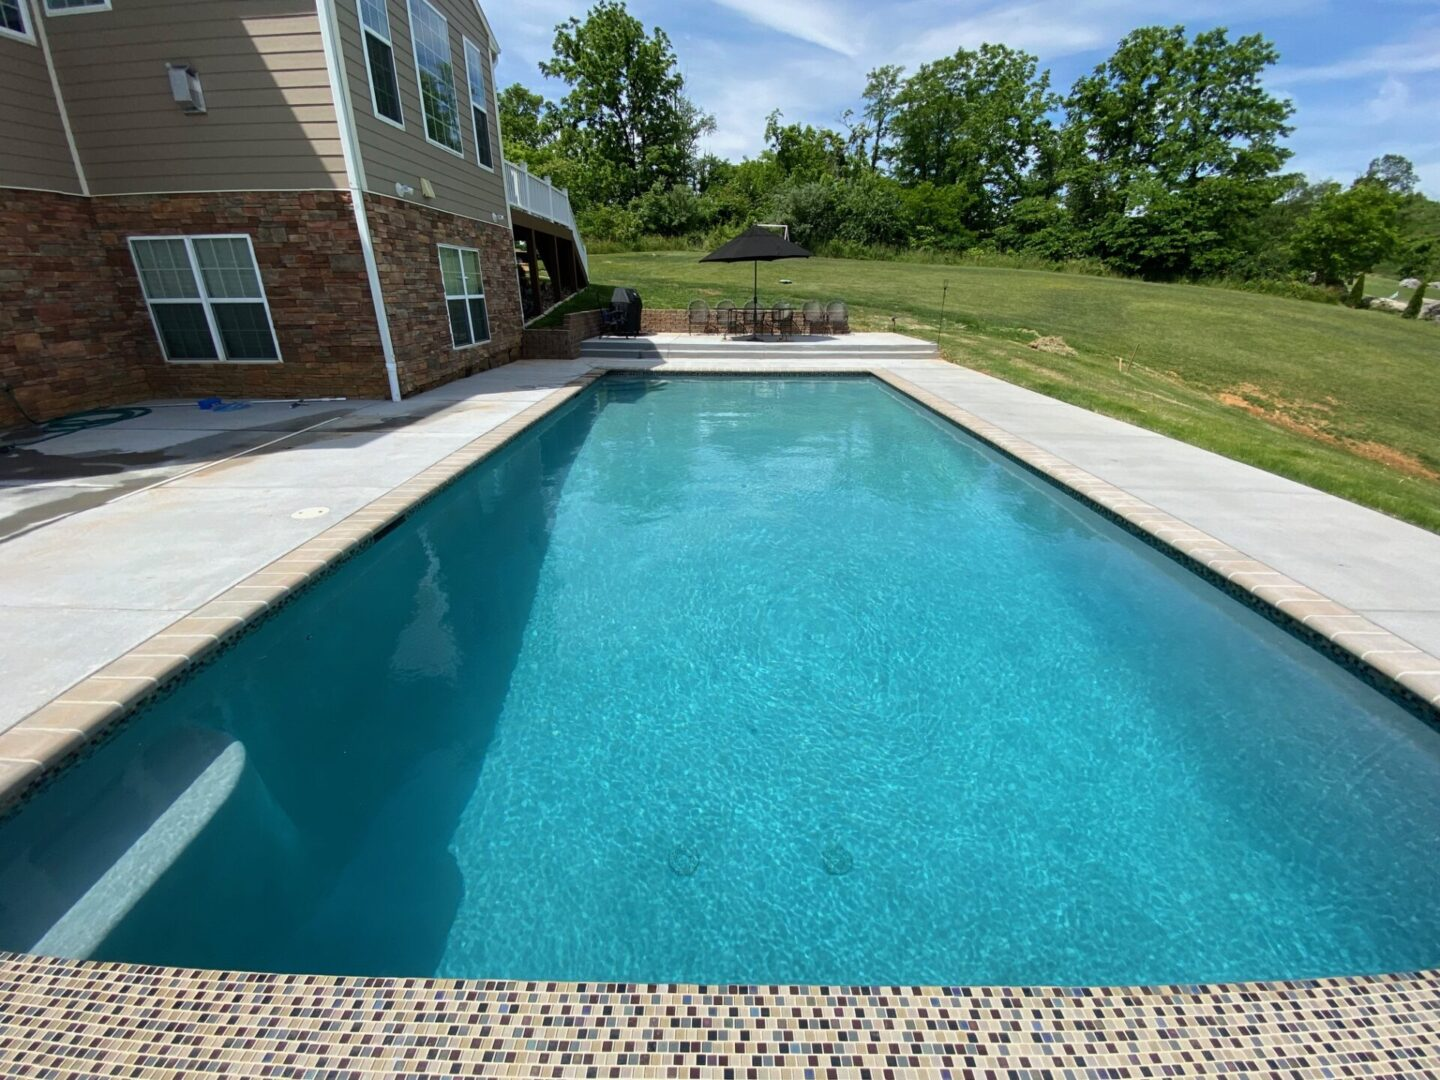 Lengthwise view of an outdoor swimming pool